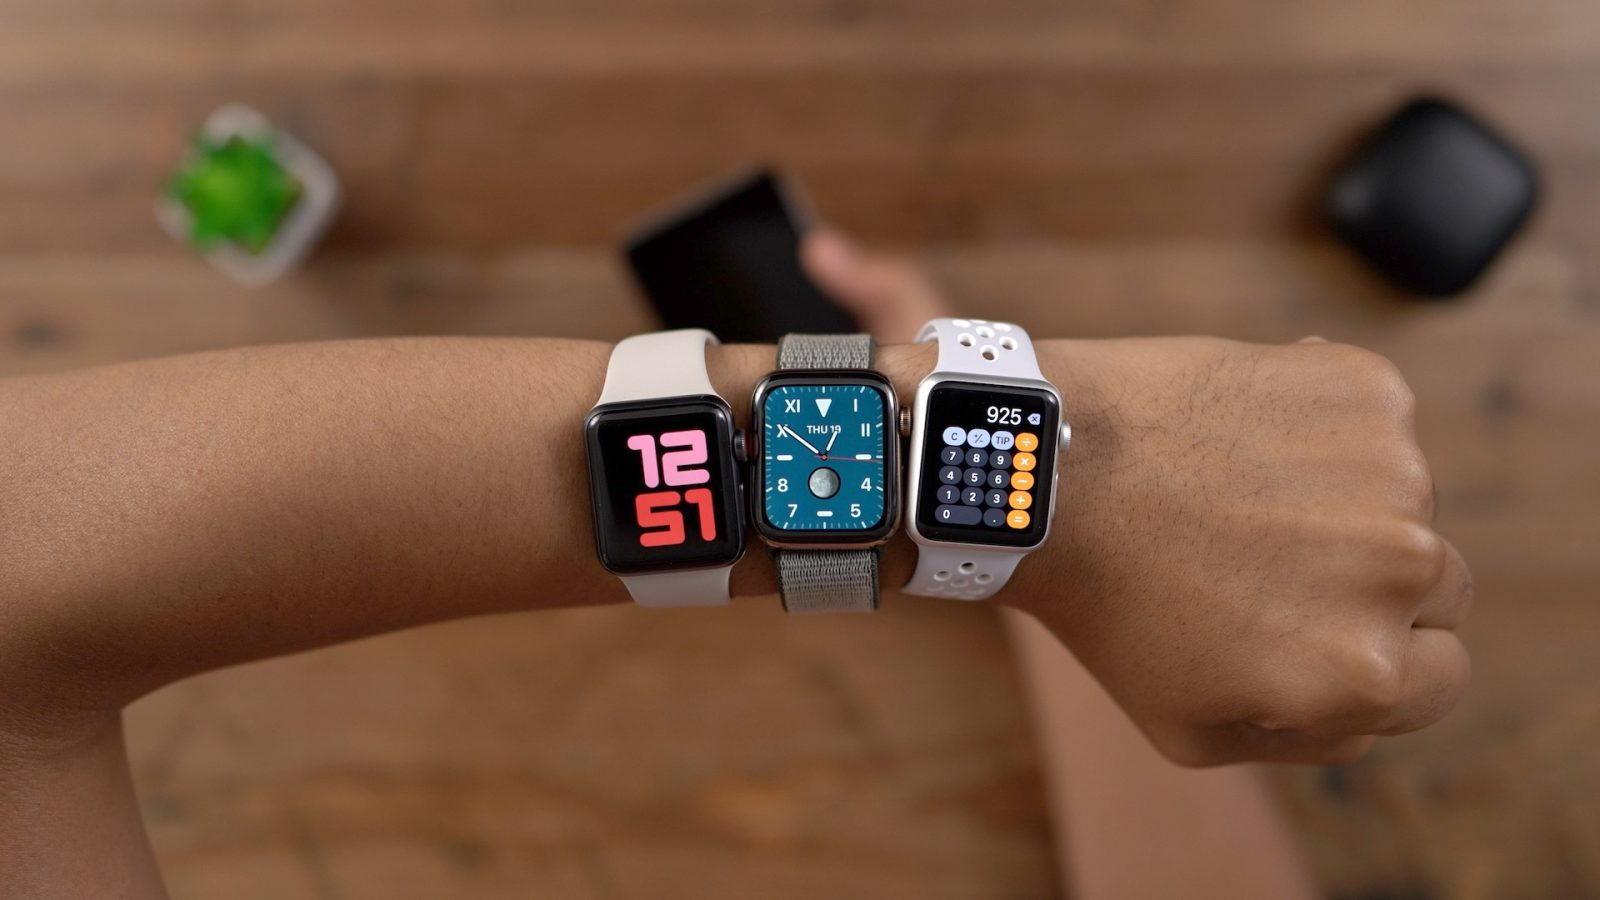 watchOS 6: Hands-on with the top new features for Apple Watch [Video]